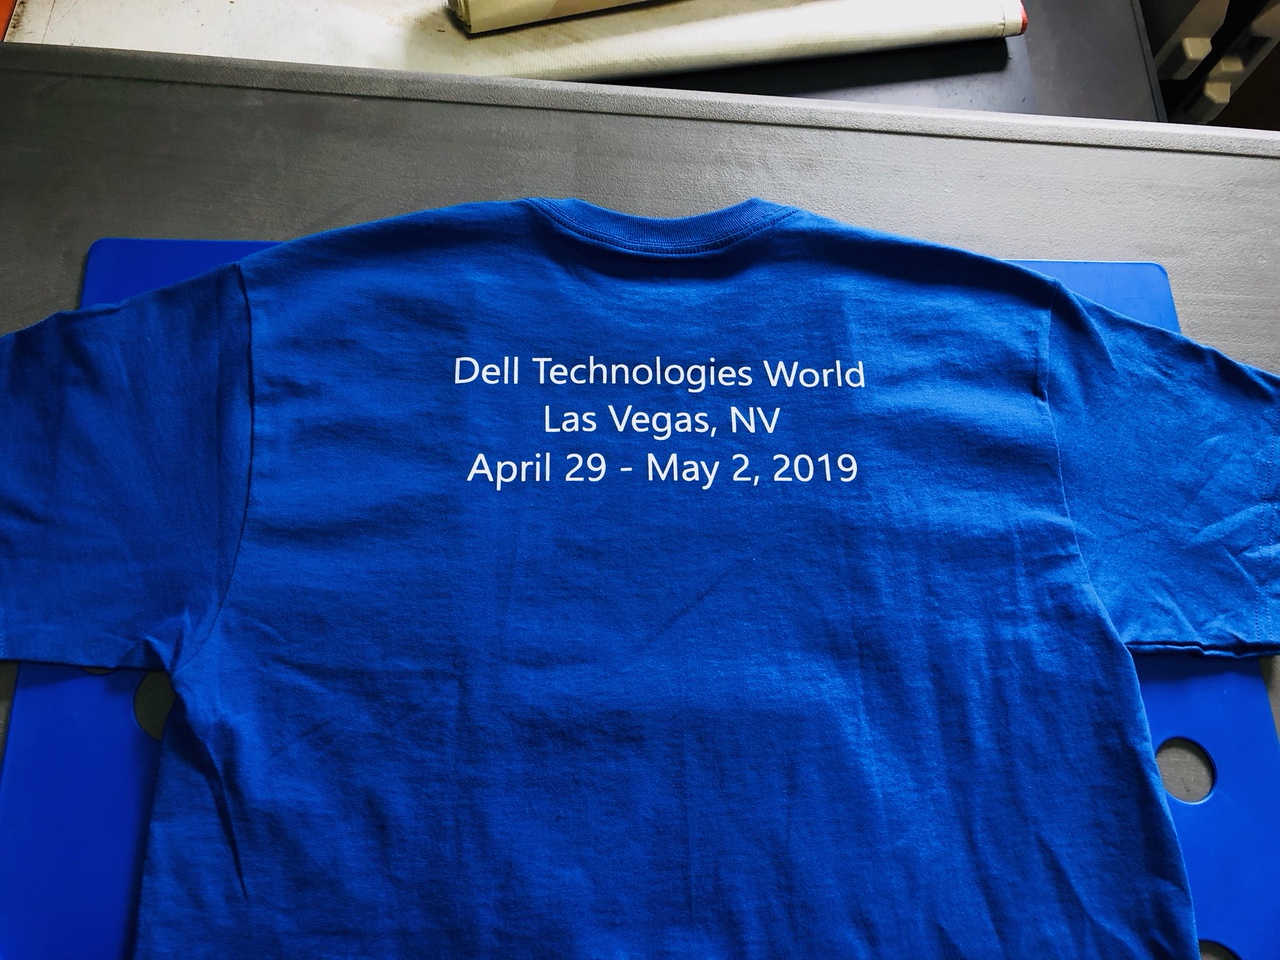 logounltd_laser_etching_embroidery_screen_printing_apparel_uniform_custom_tshirts_kirkland_bellevue_seattle_redmond_woodinville_branded_merchandise_promotional_products_logo_unltd_microsoft (3).JPG